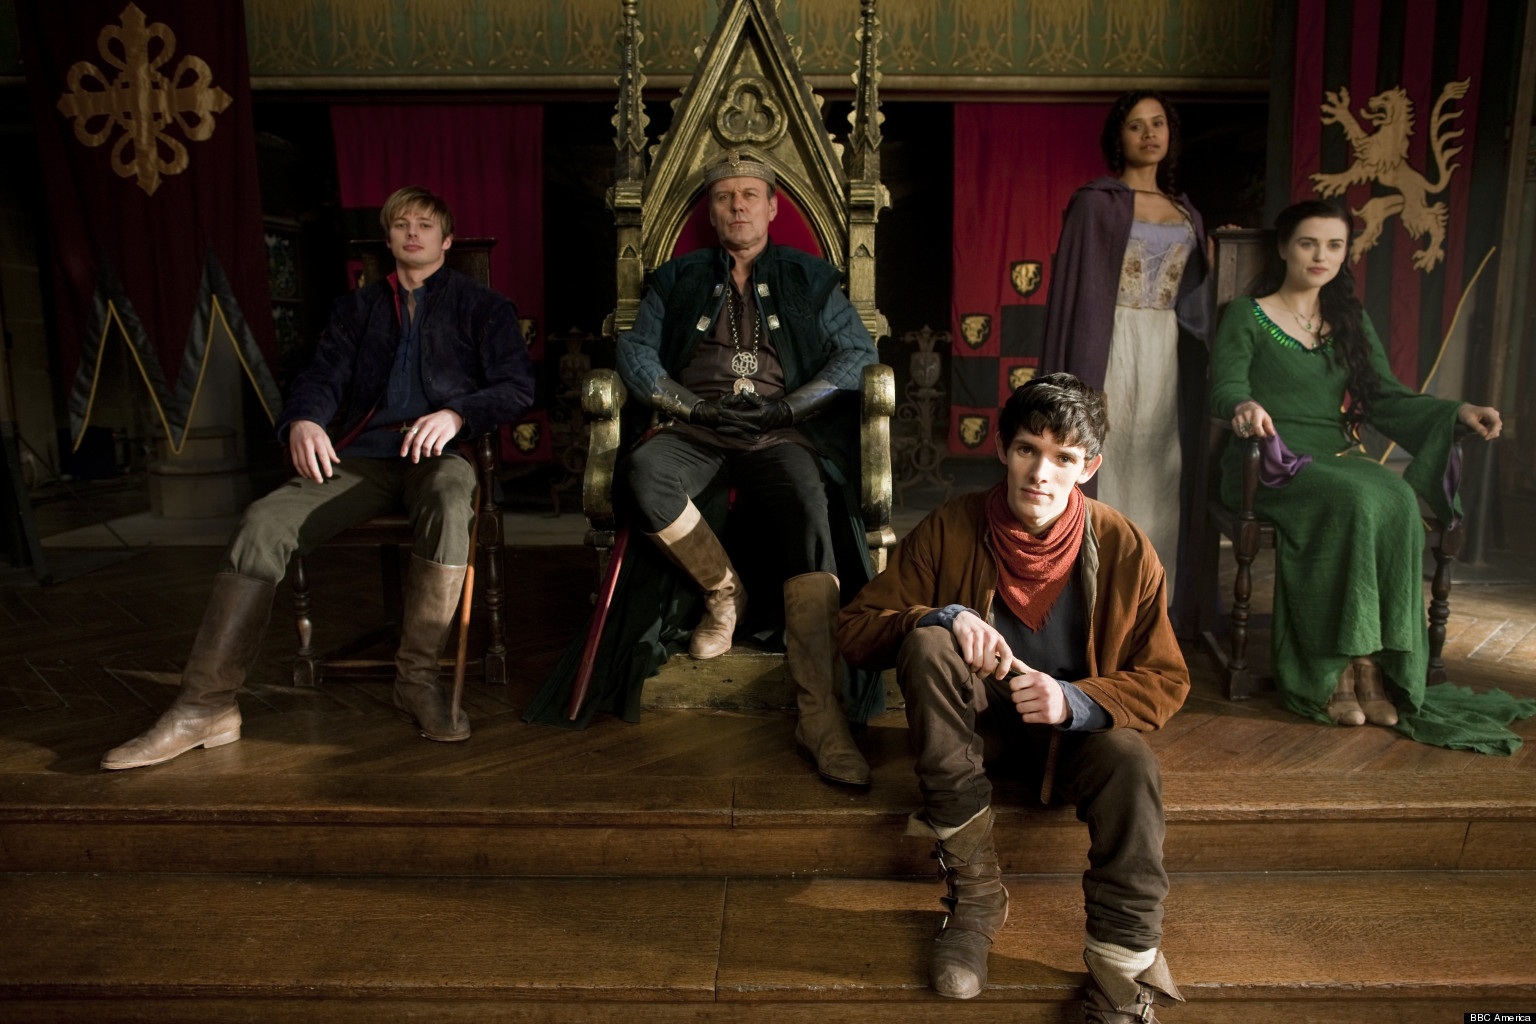 Merlin season 1 episode 7 2008 -  Episode 1 39 Merlin 39 S Merlin Canceled Bbc One Series To End After Season 5 Huffpost